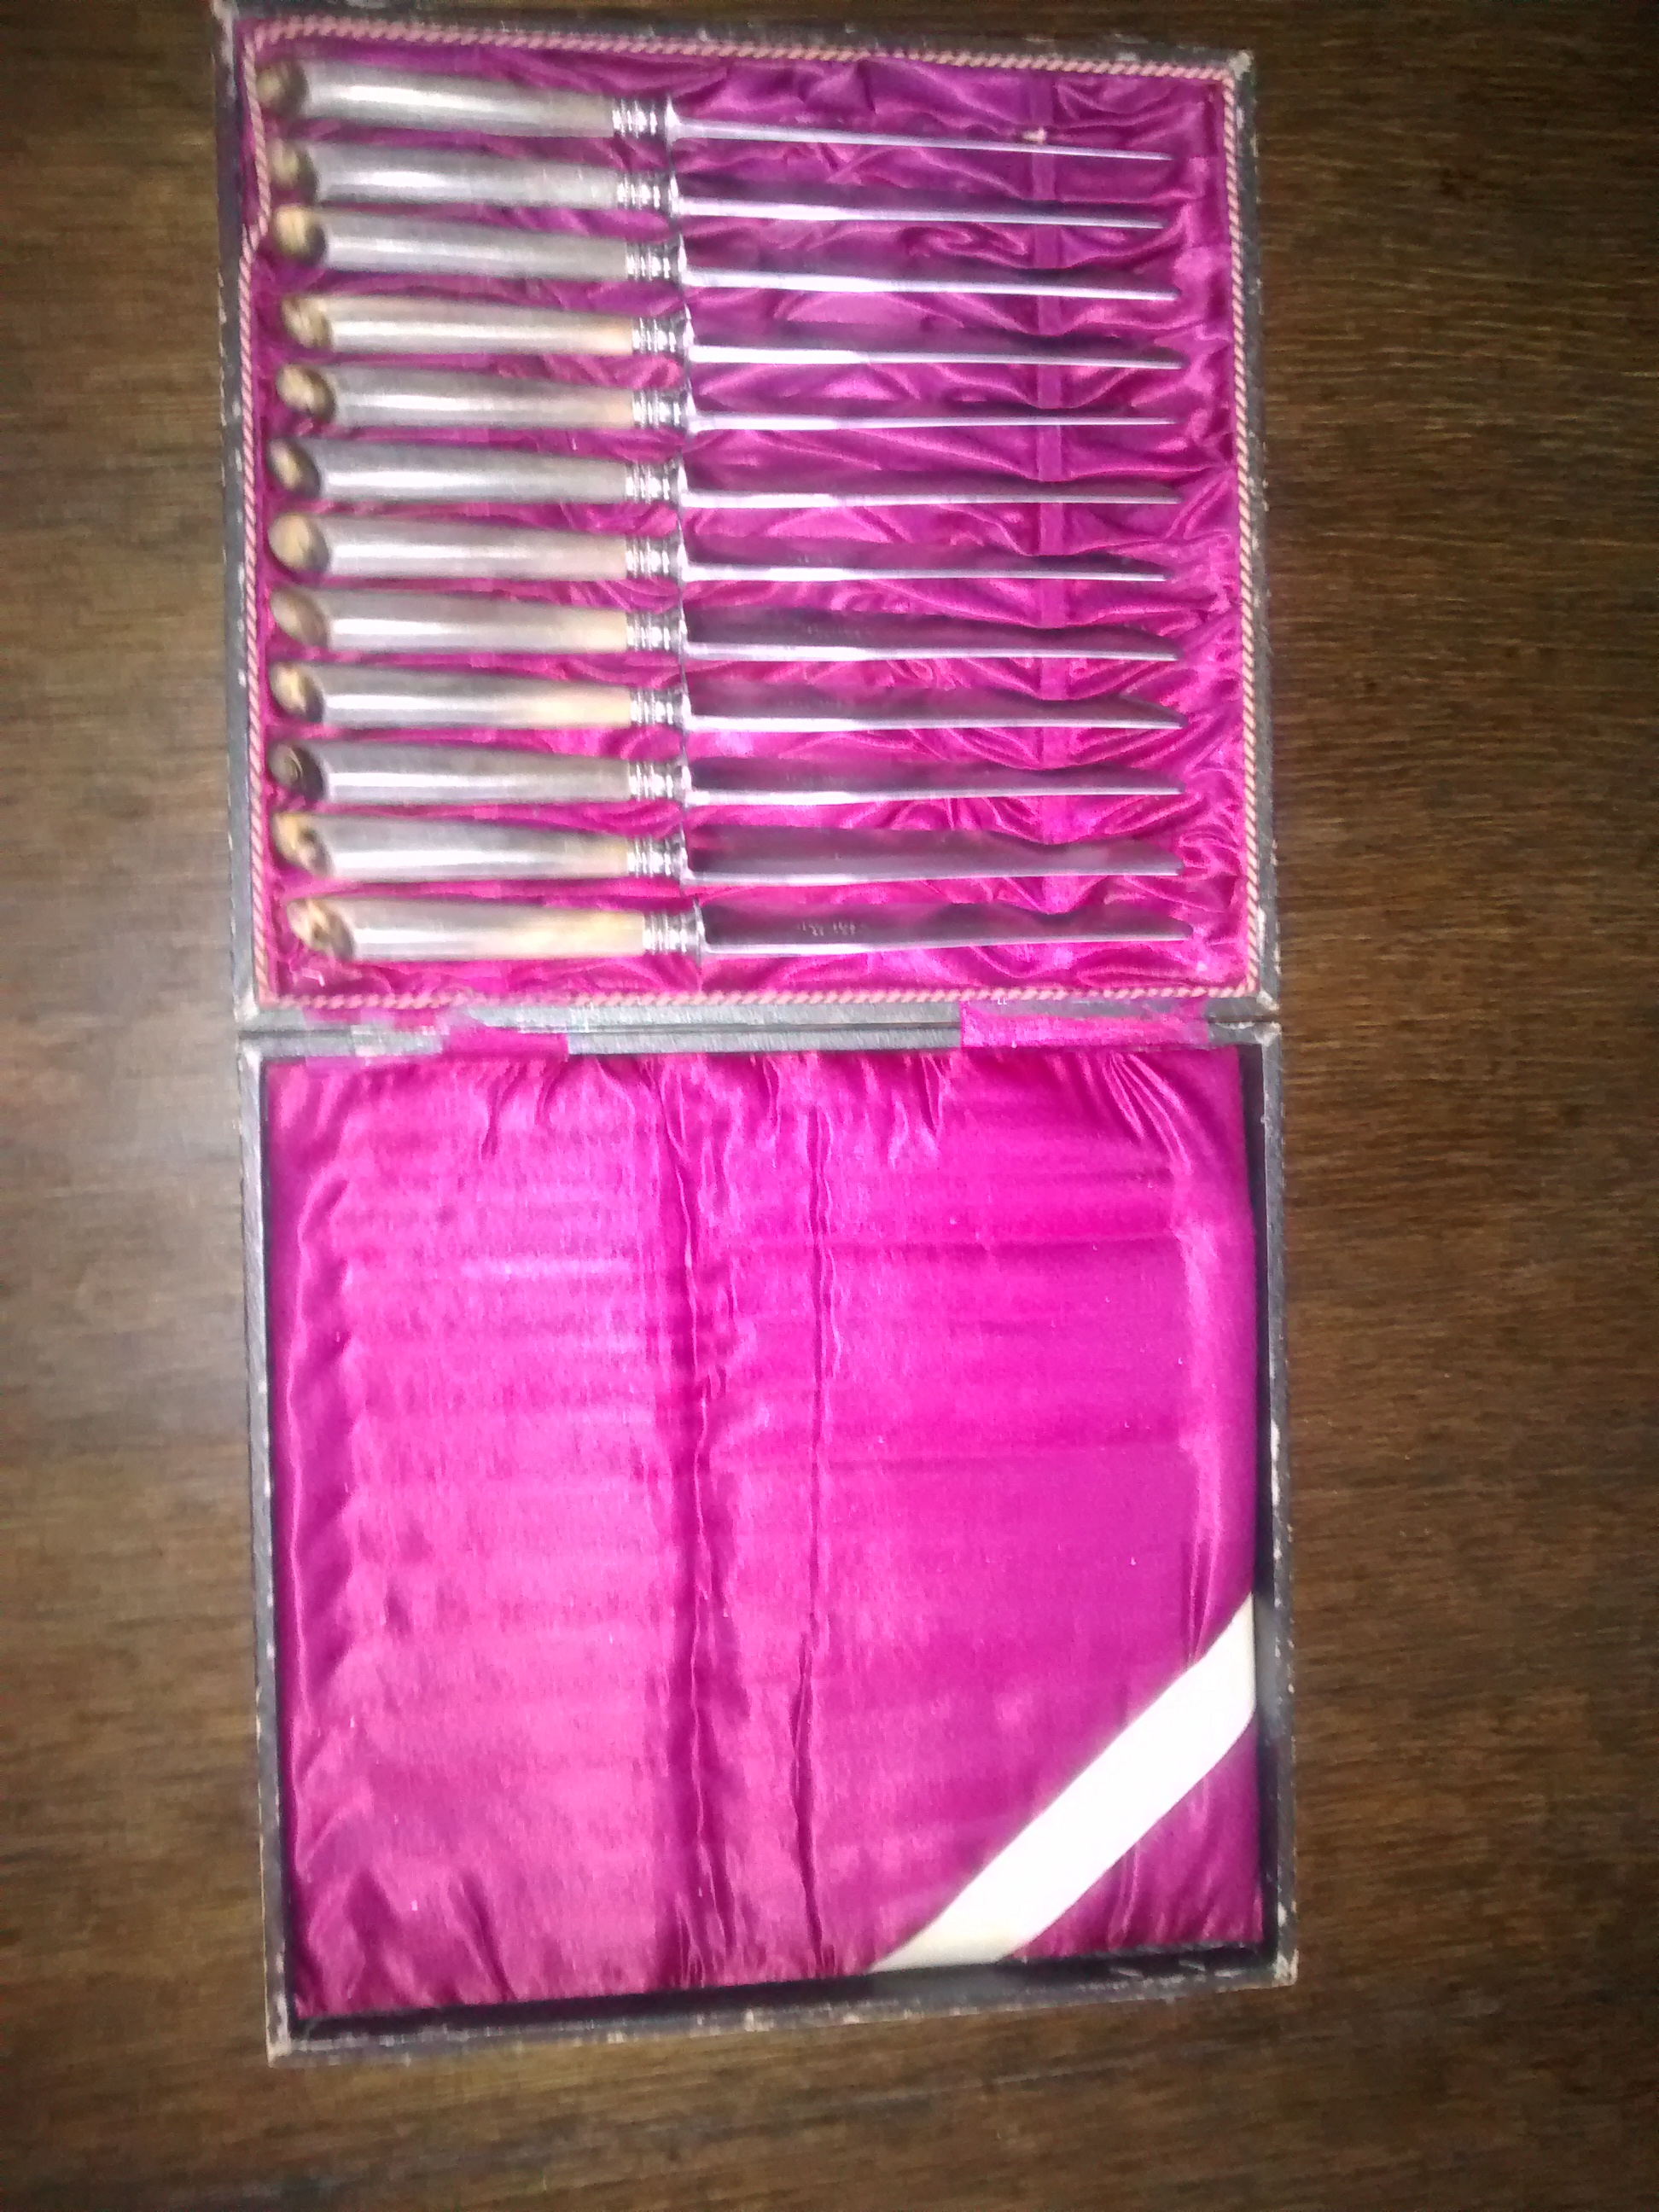 Set of 12 in box.jpg